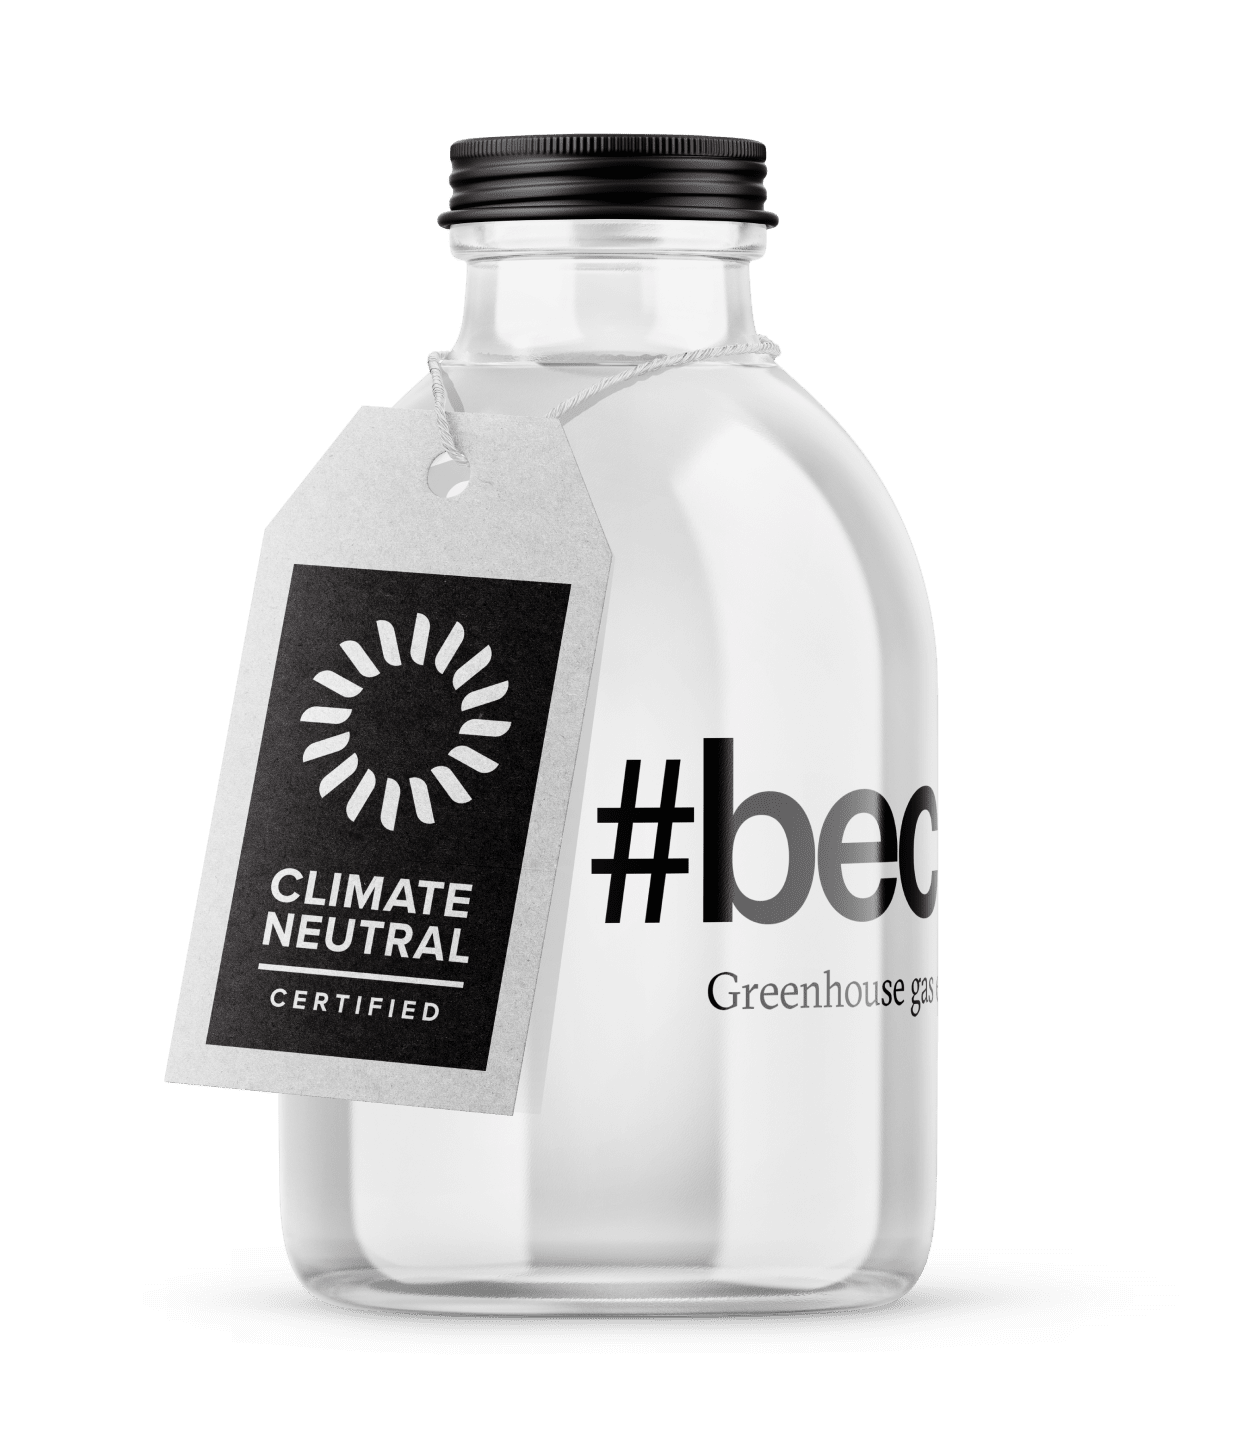 A glass bottle with a Climate Neutral Certified tag.